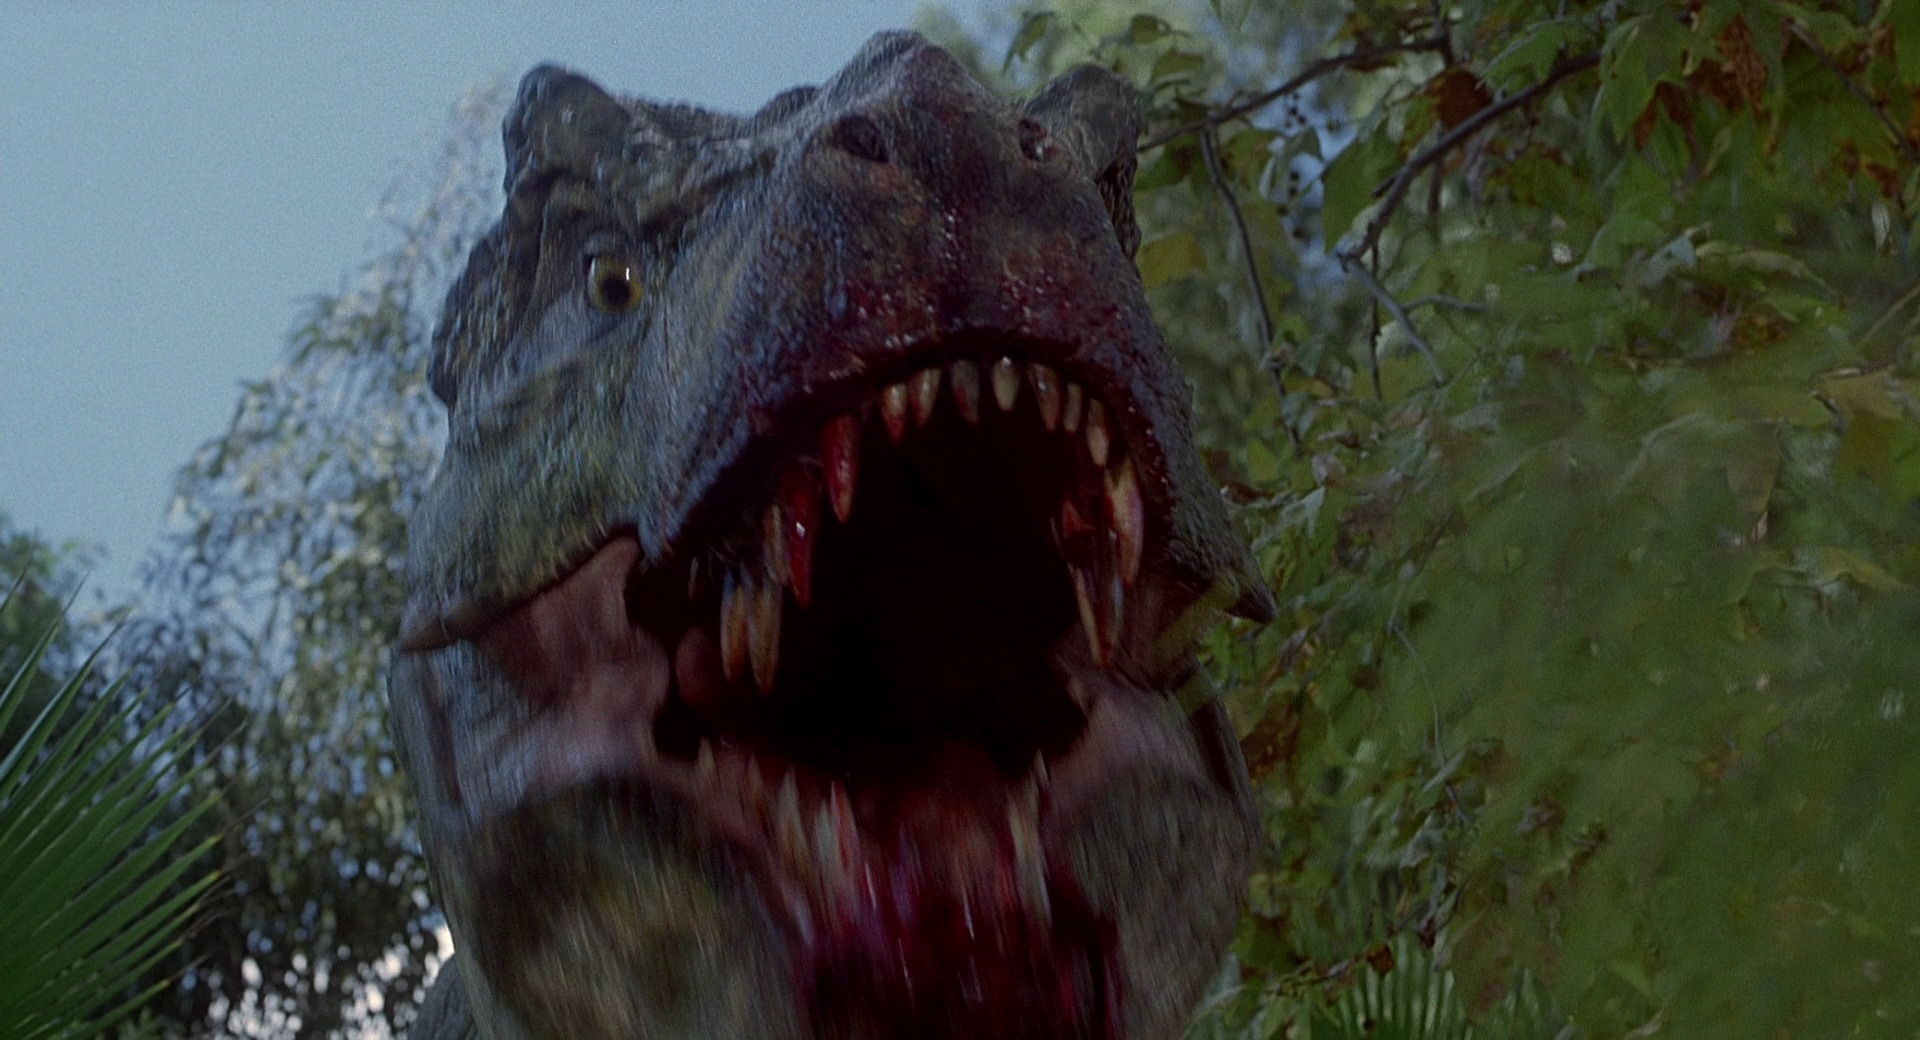 Best and worst moments of Animatronics in the JP quadrilogy?   Jurassic-park3-movie-screencaps.com-3119